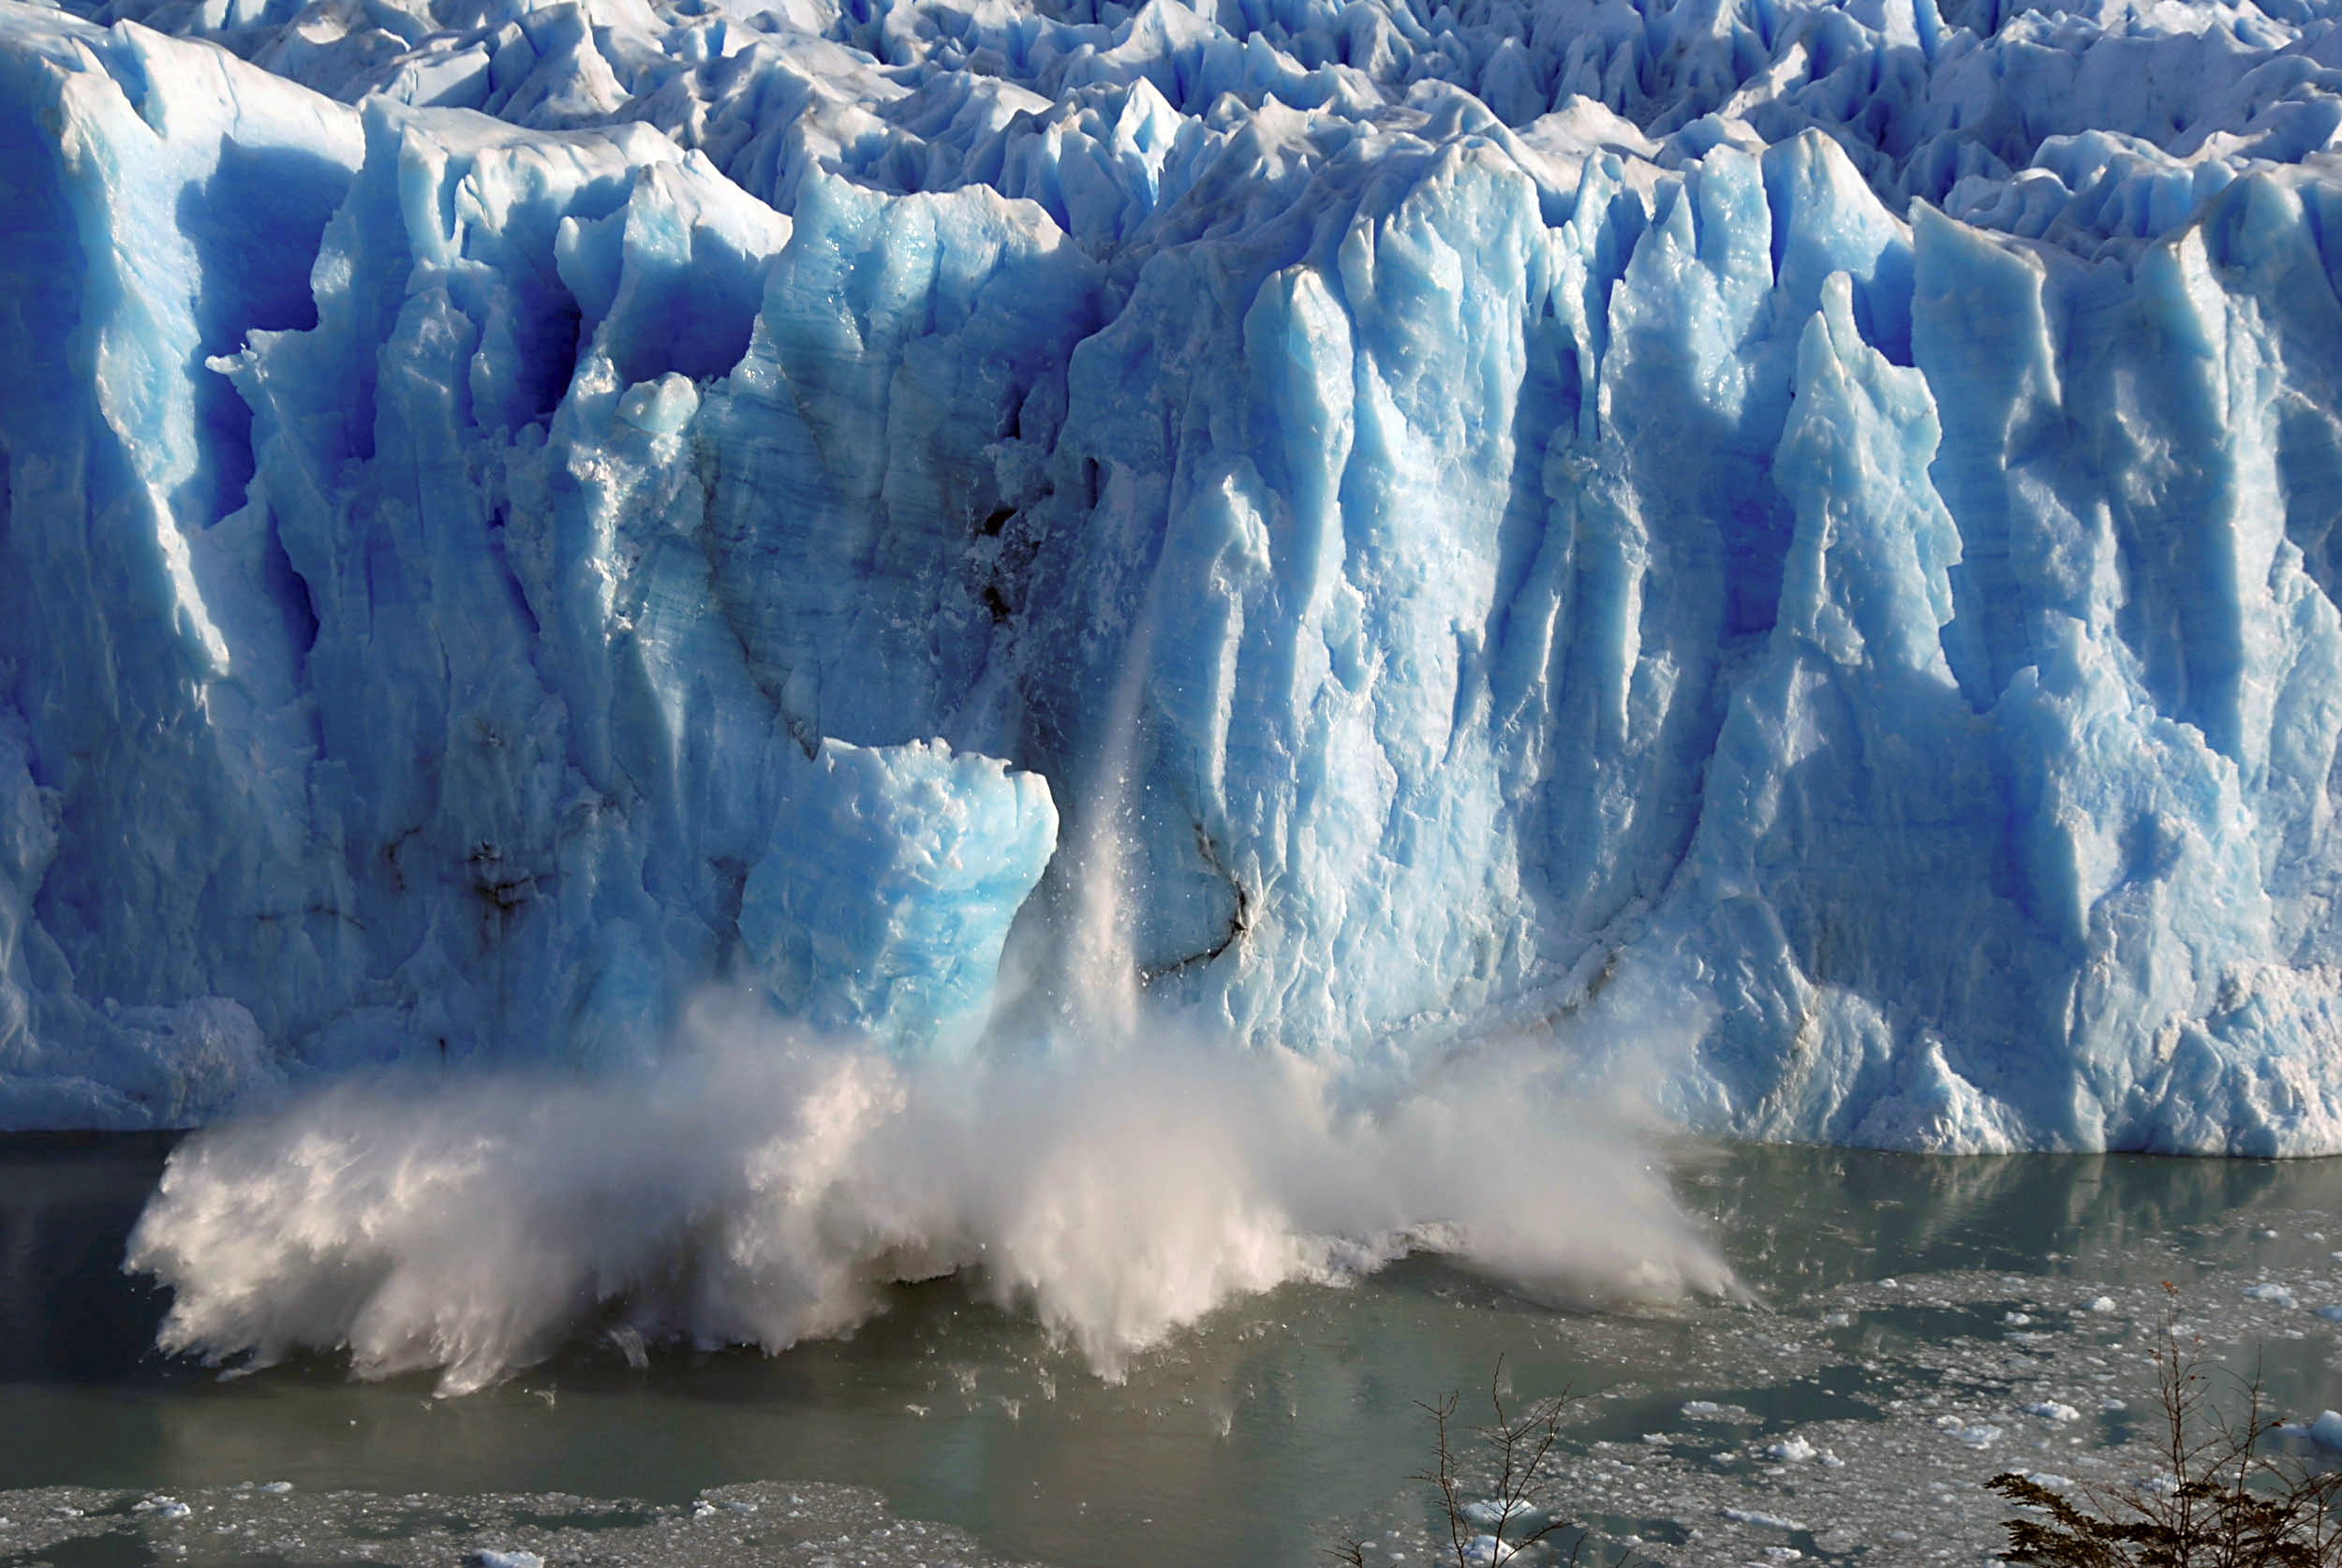 Splinters of ice peel off from one of the sides of the Perito Moreno glacier near the city of El Calafate in the Patagonian province of Santa Cruz, southern Argentina, on July 7, 2008. REUTERS/Andres Forza